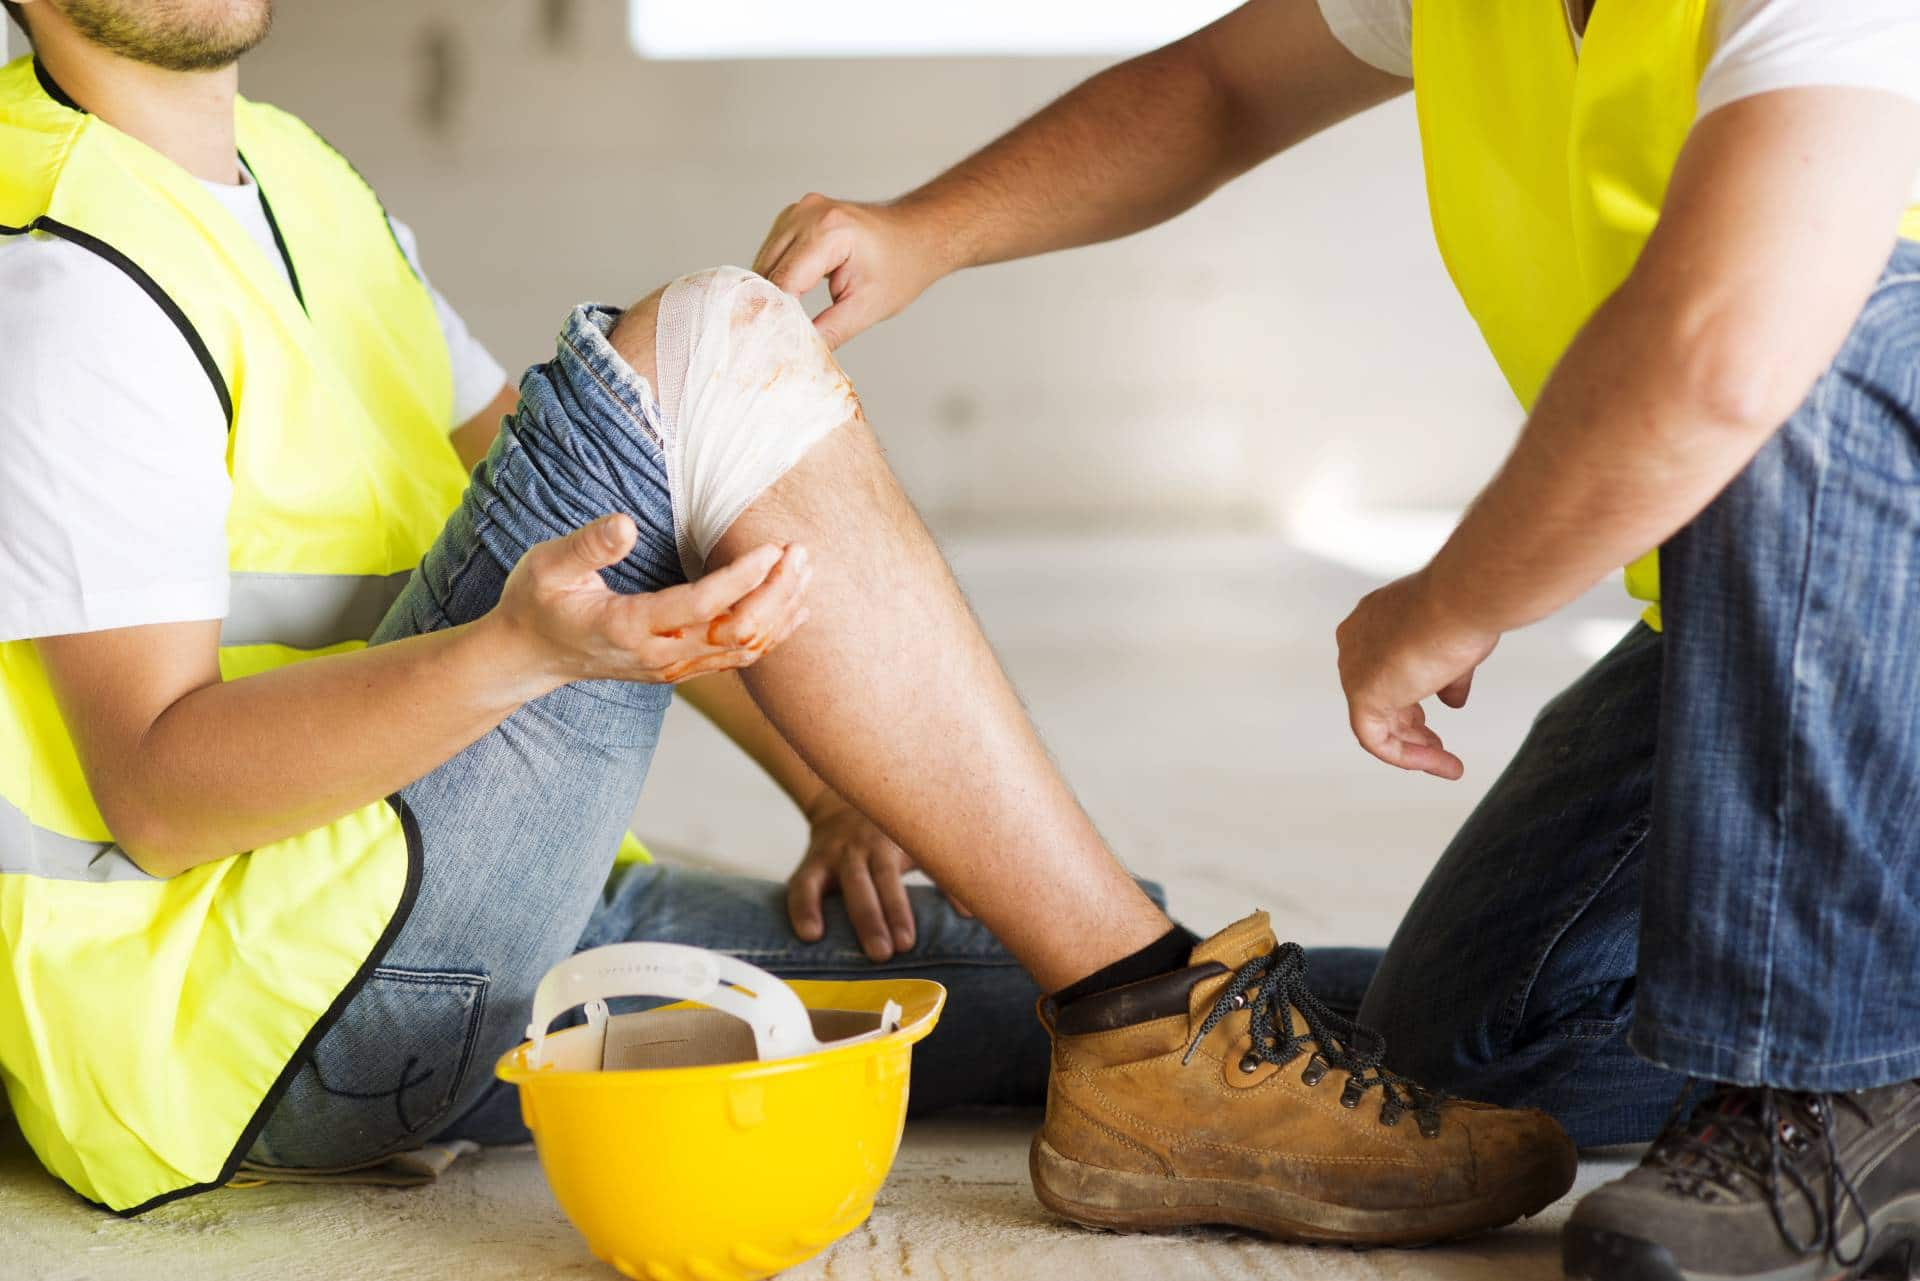 Injured at work? Schedule a free consulation with the Angell Law Firm.